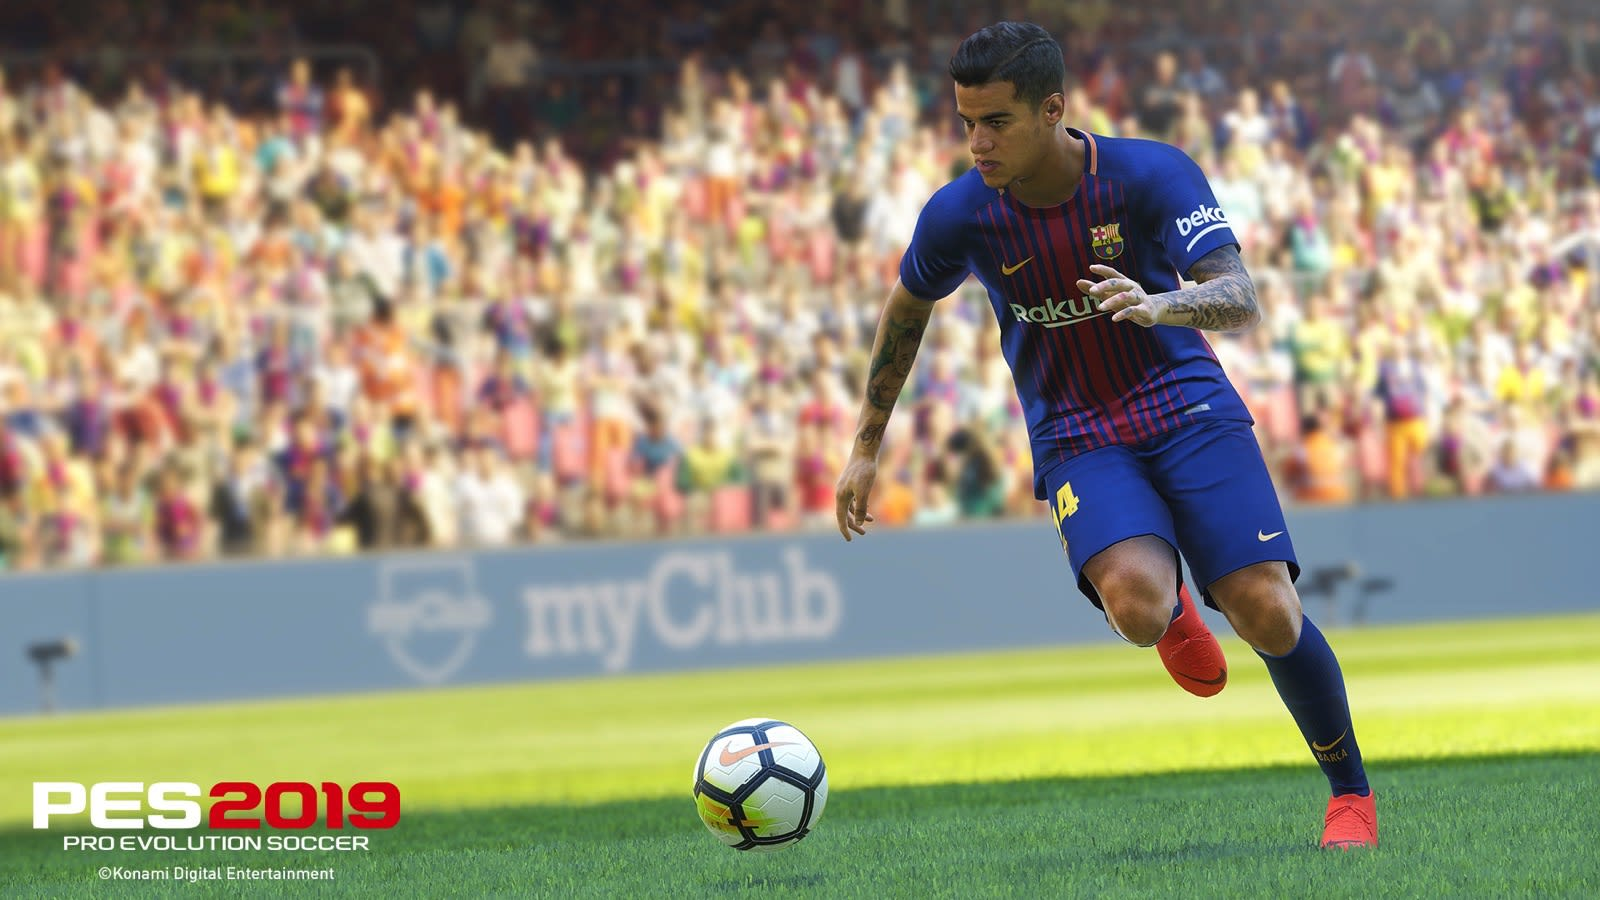 Konami says Sony made the call to drop 'PES 2019' from PS